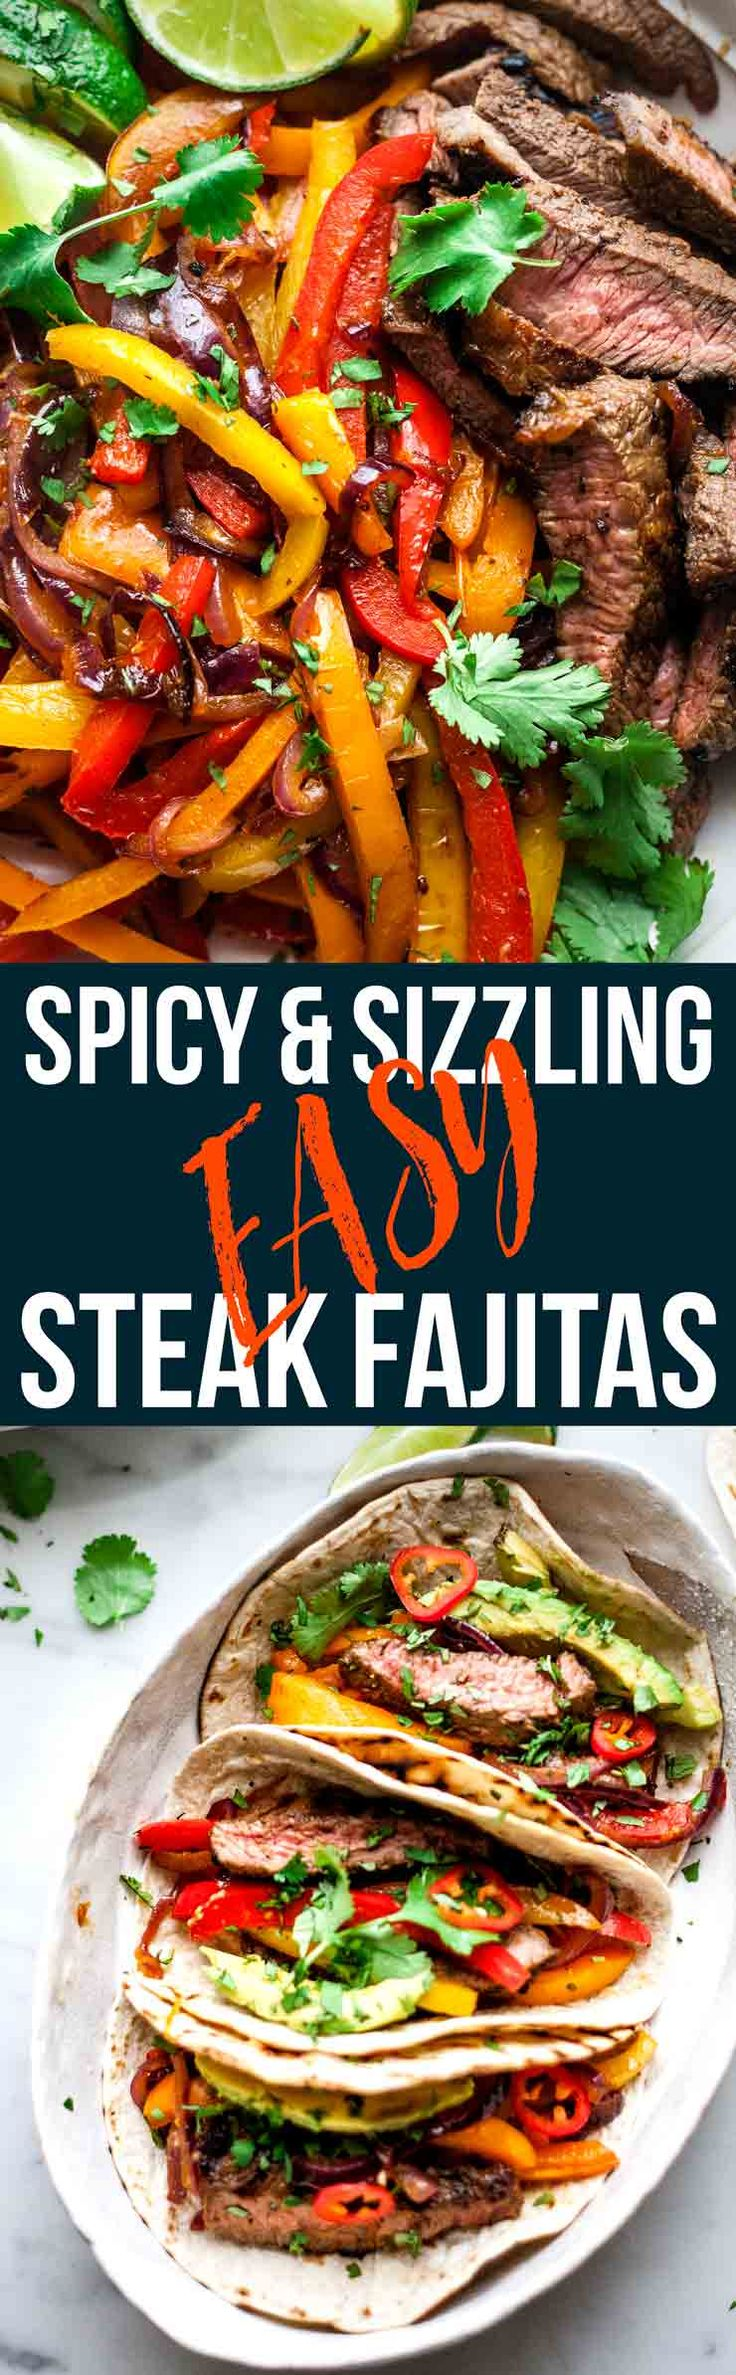 These easy beef fajitas will be a new family classic. Tender and juicy beef steak in a smokey and spicy homemade marinated. Grilled beef and veggies wrapped in soft tortillas with avocado and lime. Kitchen tested, family approved. via @saltedmint1